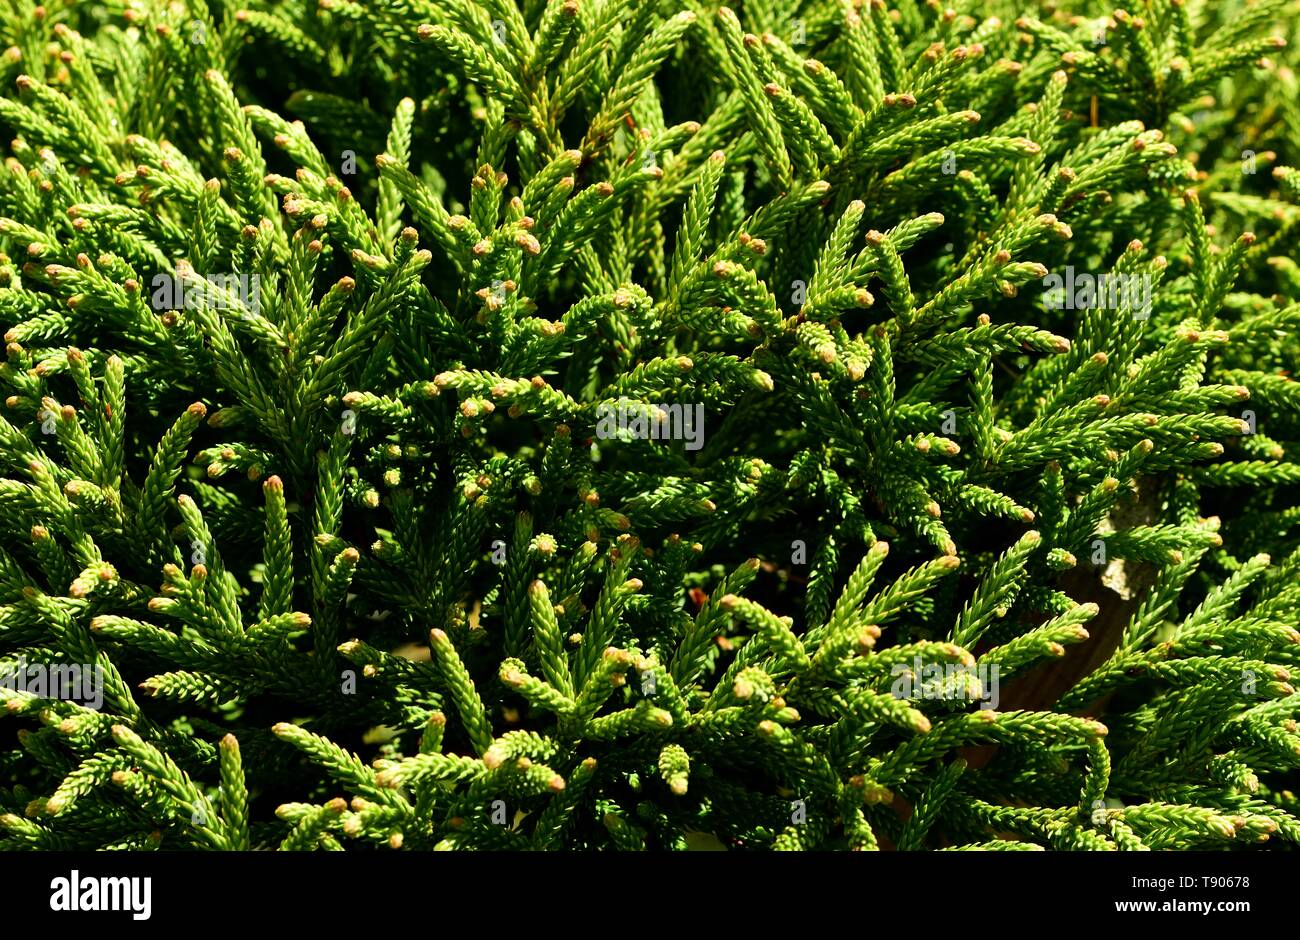 Closeup of a young Cryptomeria tree. - Stock Image